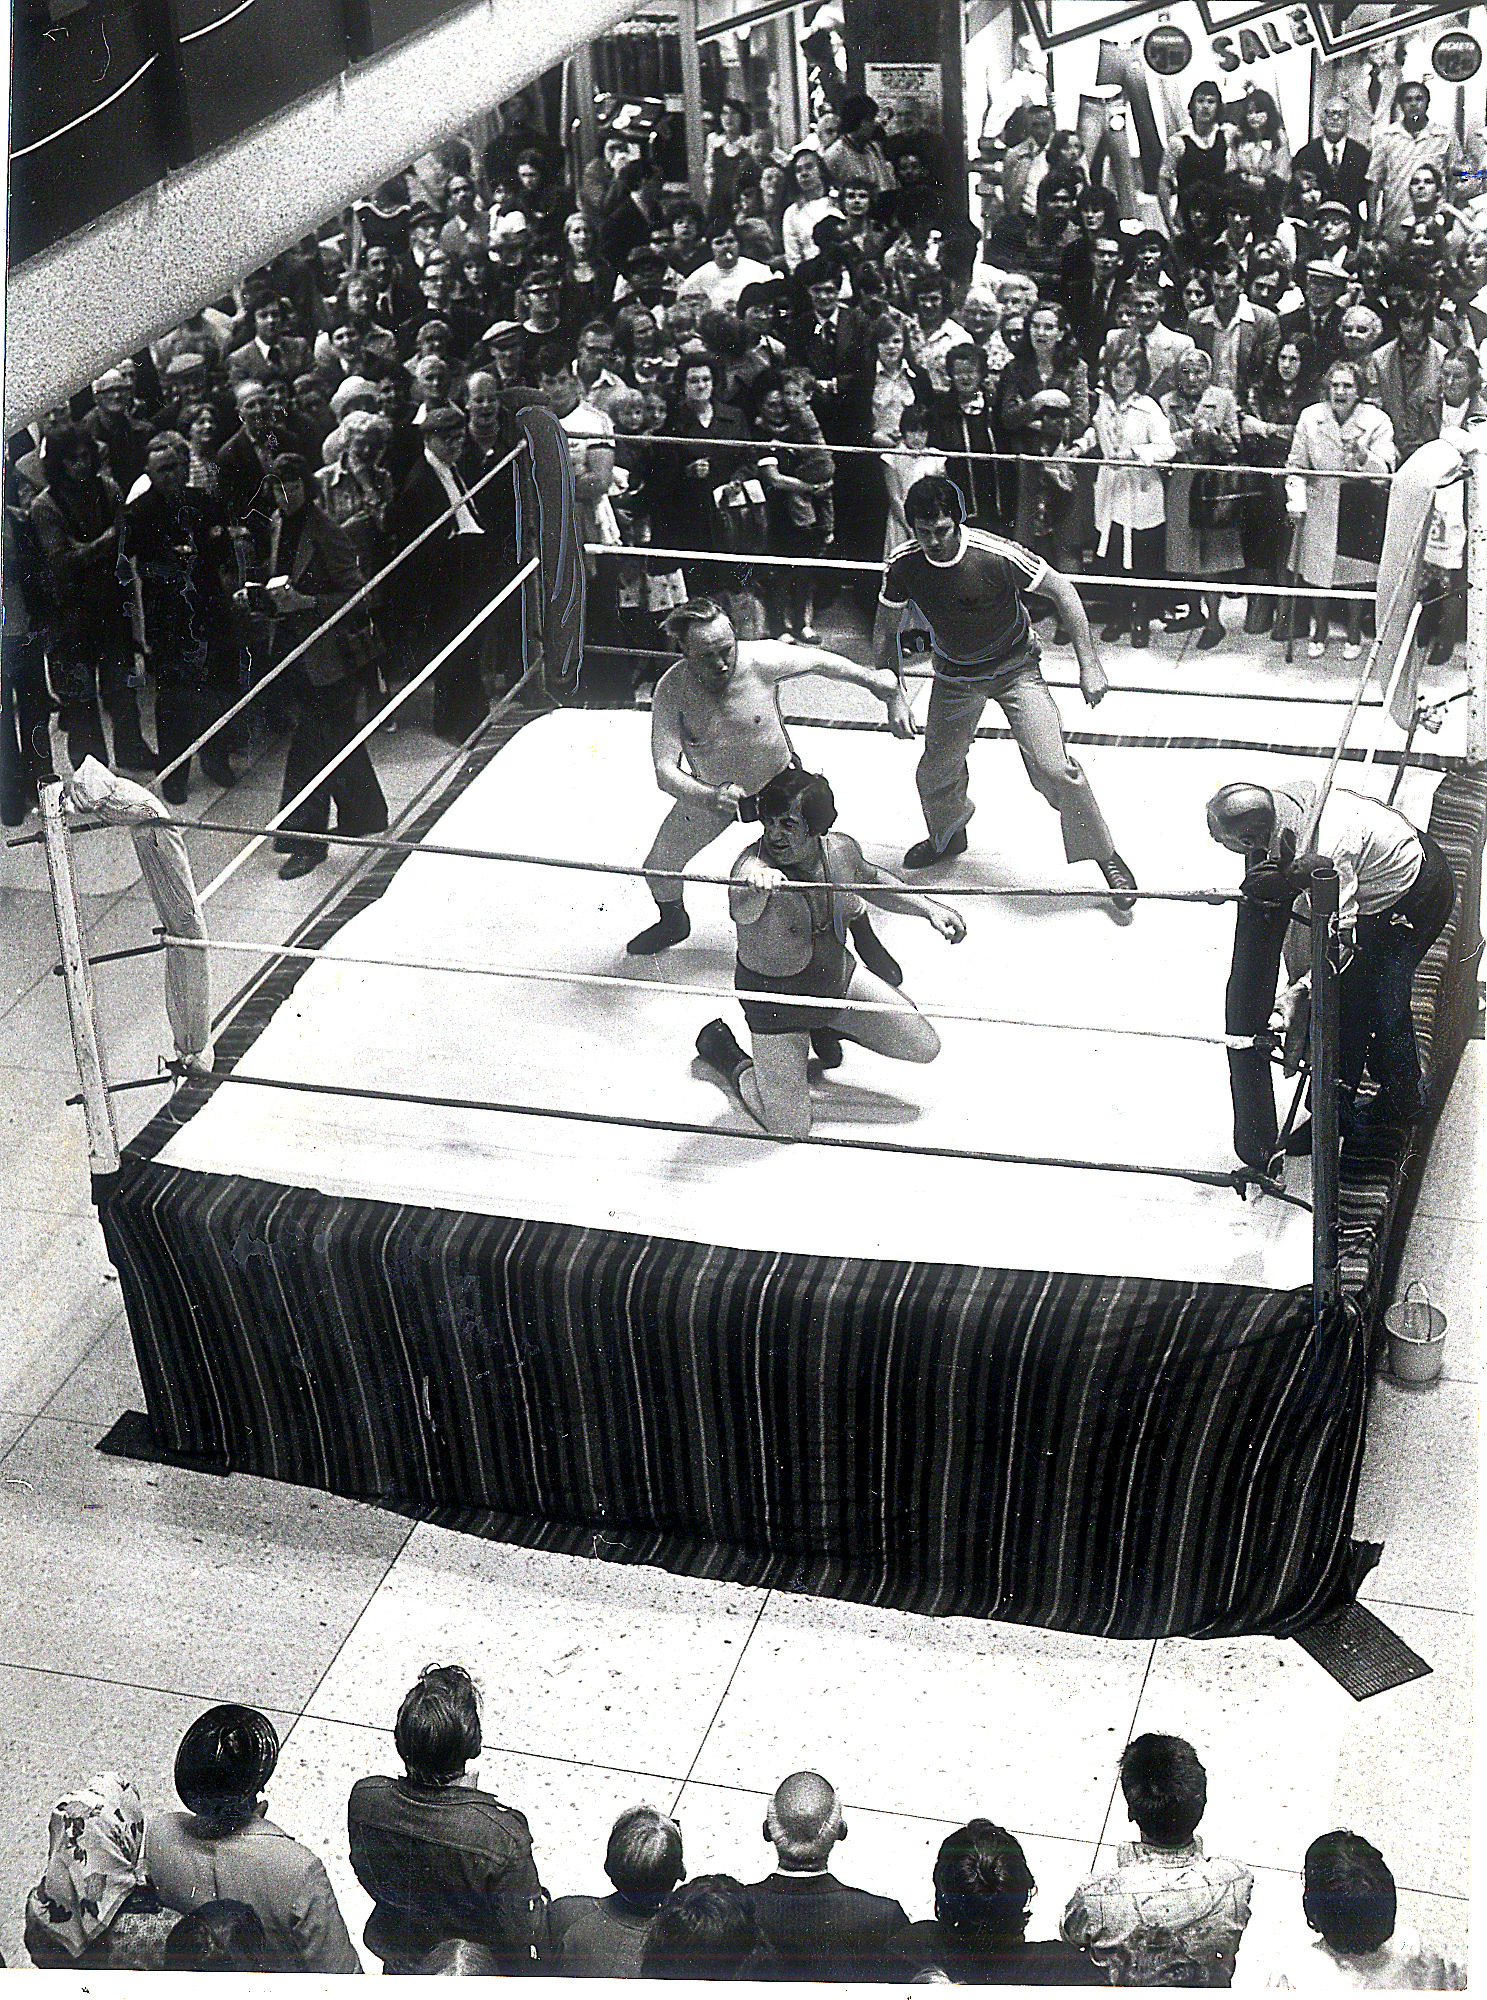 A wrestling match at Victoria Hall, Saltaire. Next month the sport returns to St George's Hall in Bradford